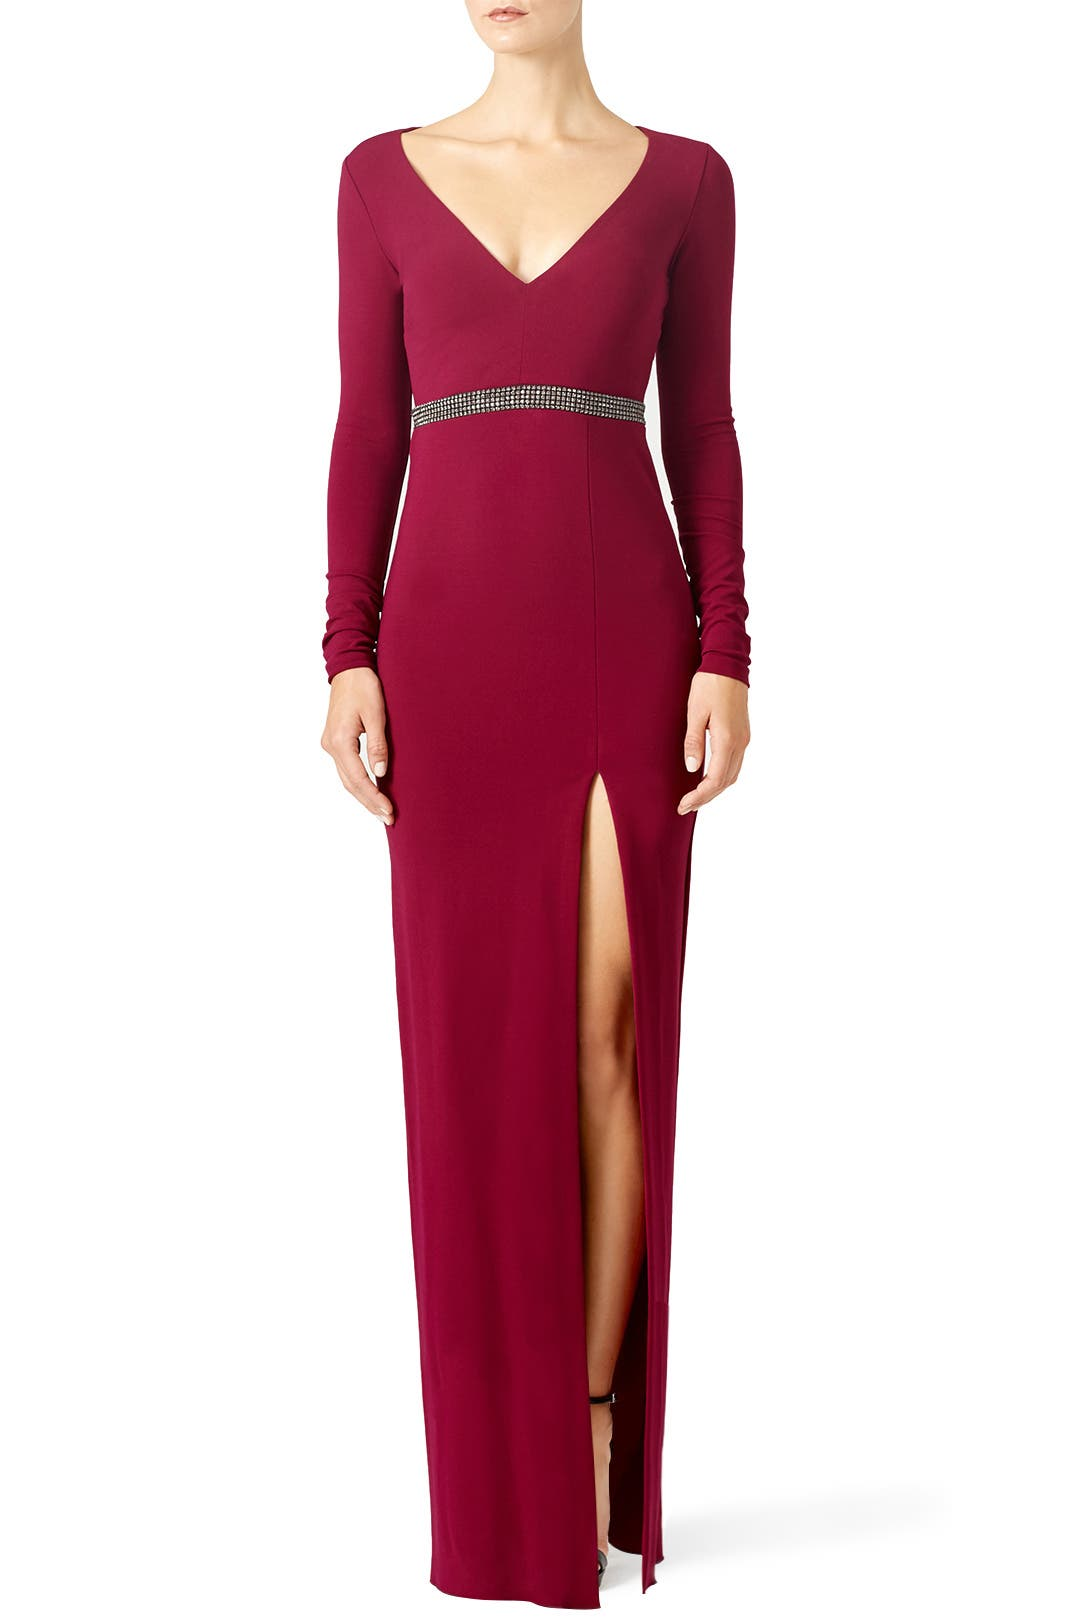 Red Berry Gown By Nicole Miller For